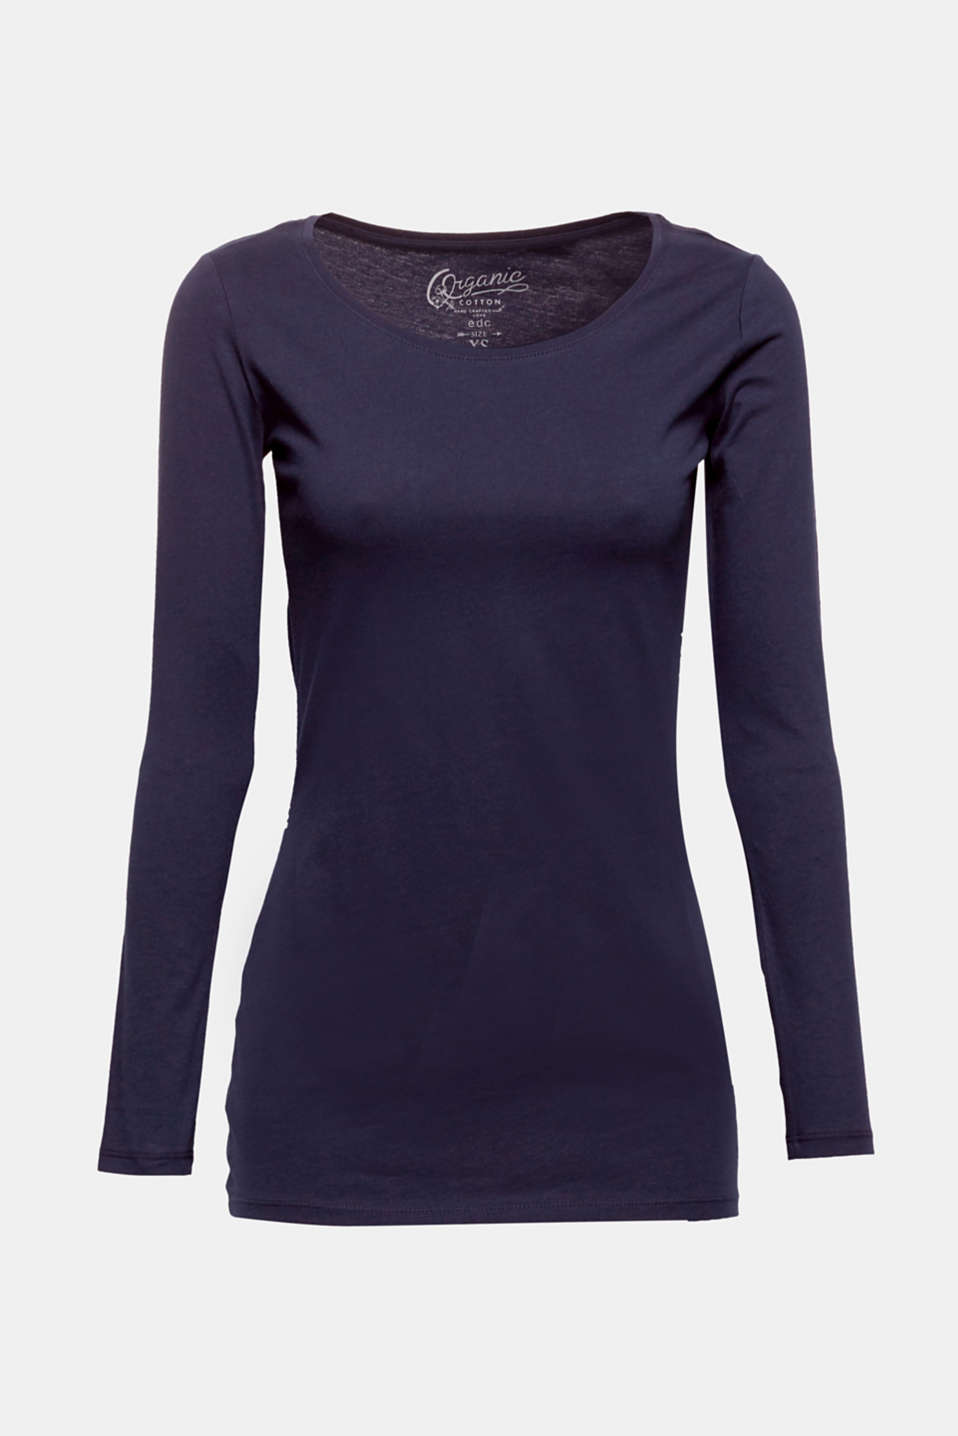 Your favourite essential: This basic long sleeve top containing environmentally friendly, high-quality organic cotton with a large round neckline can be combined with almost anything!